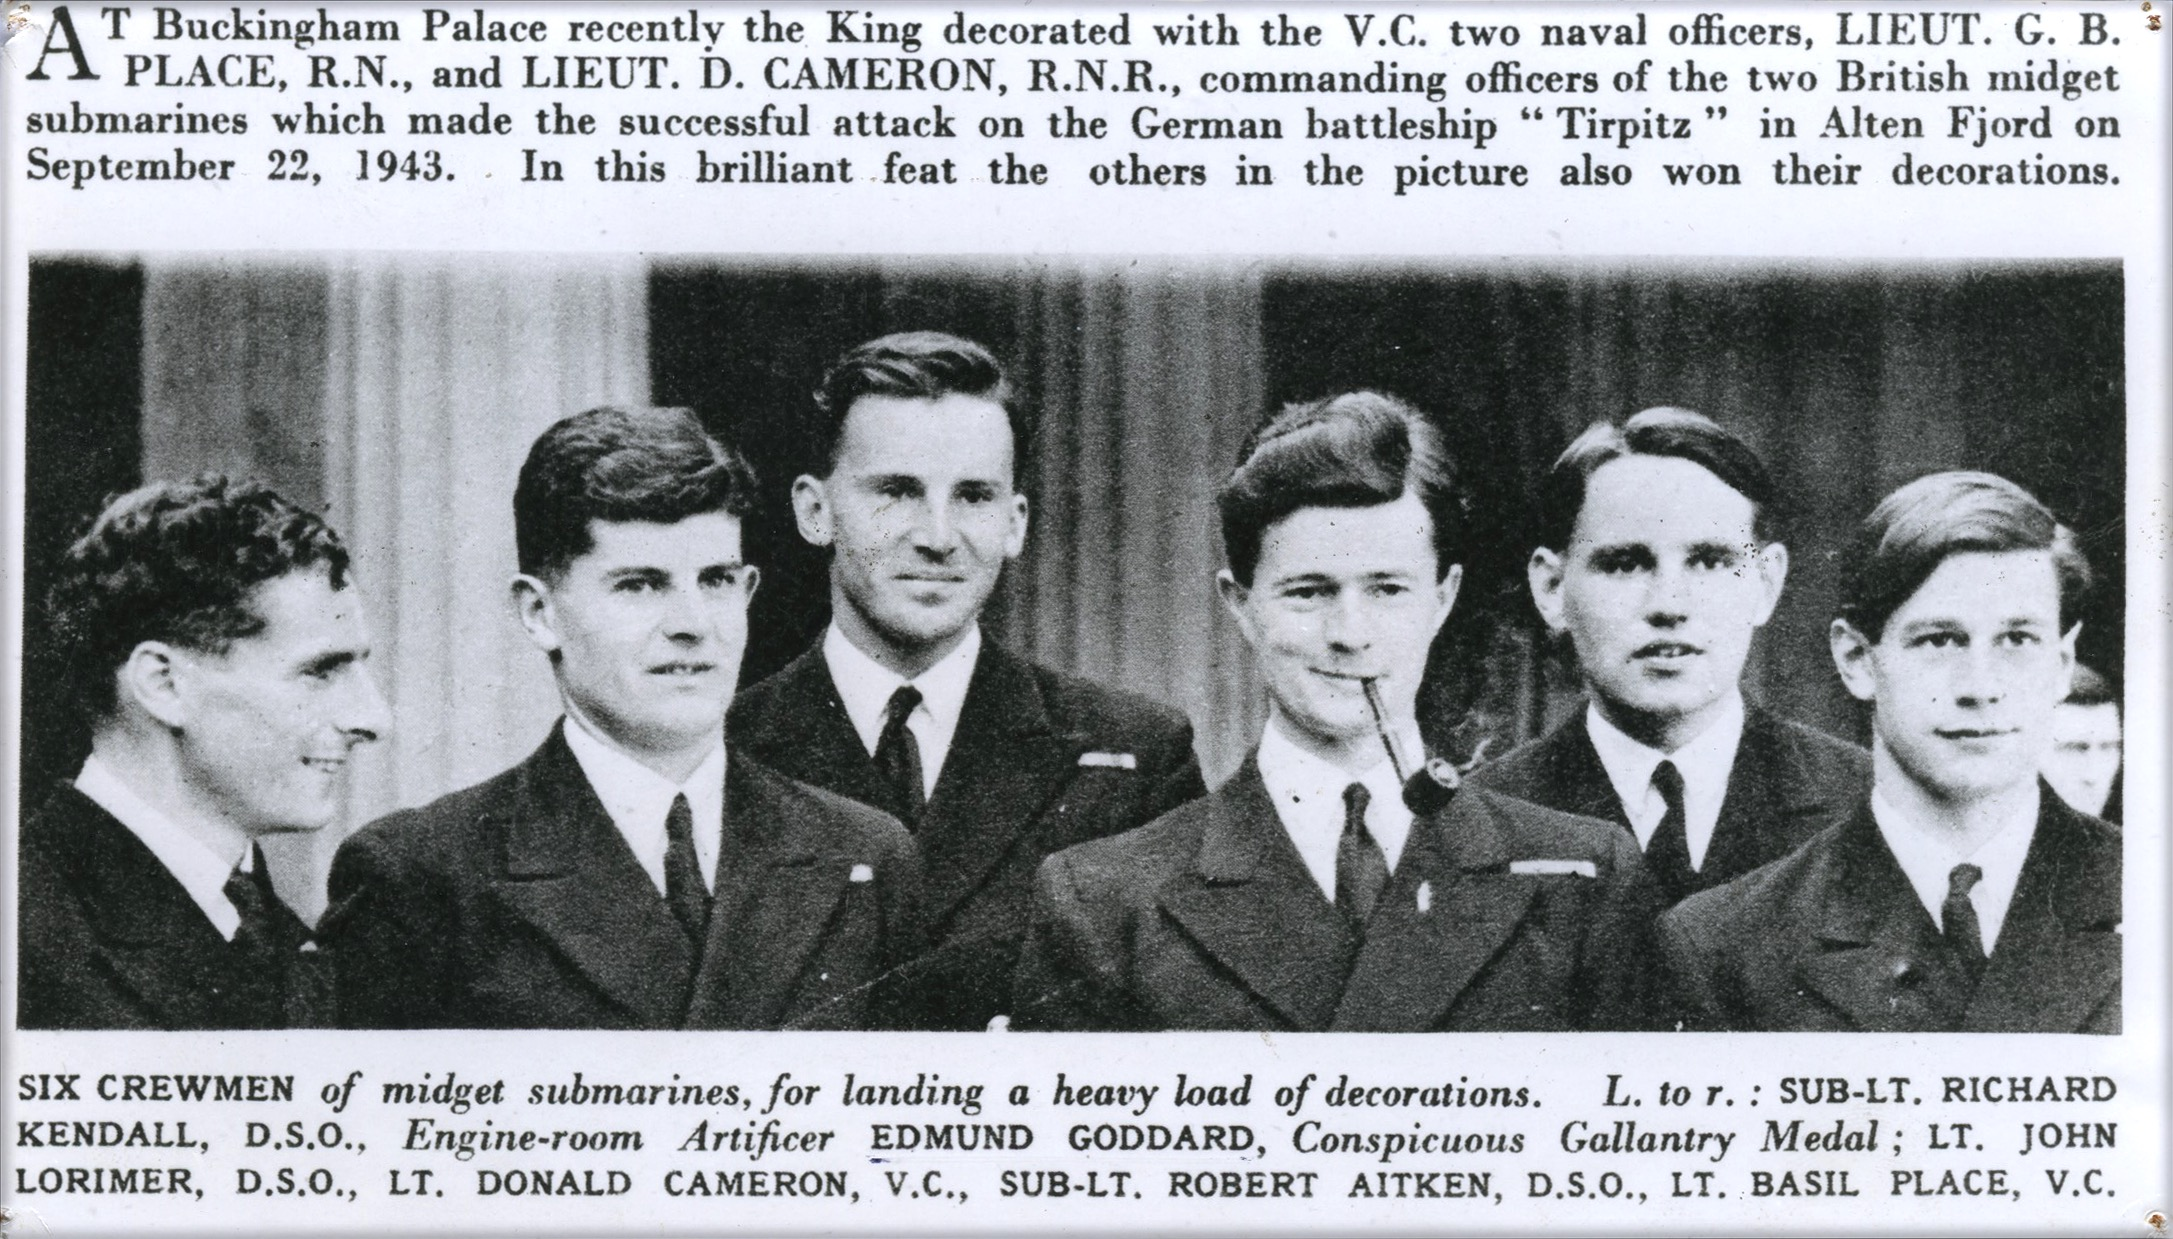 A newspaper clipping from the medal award ceremony